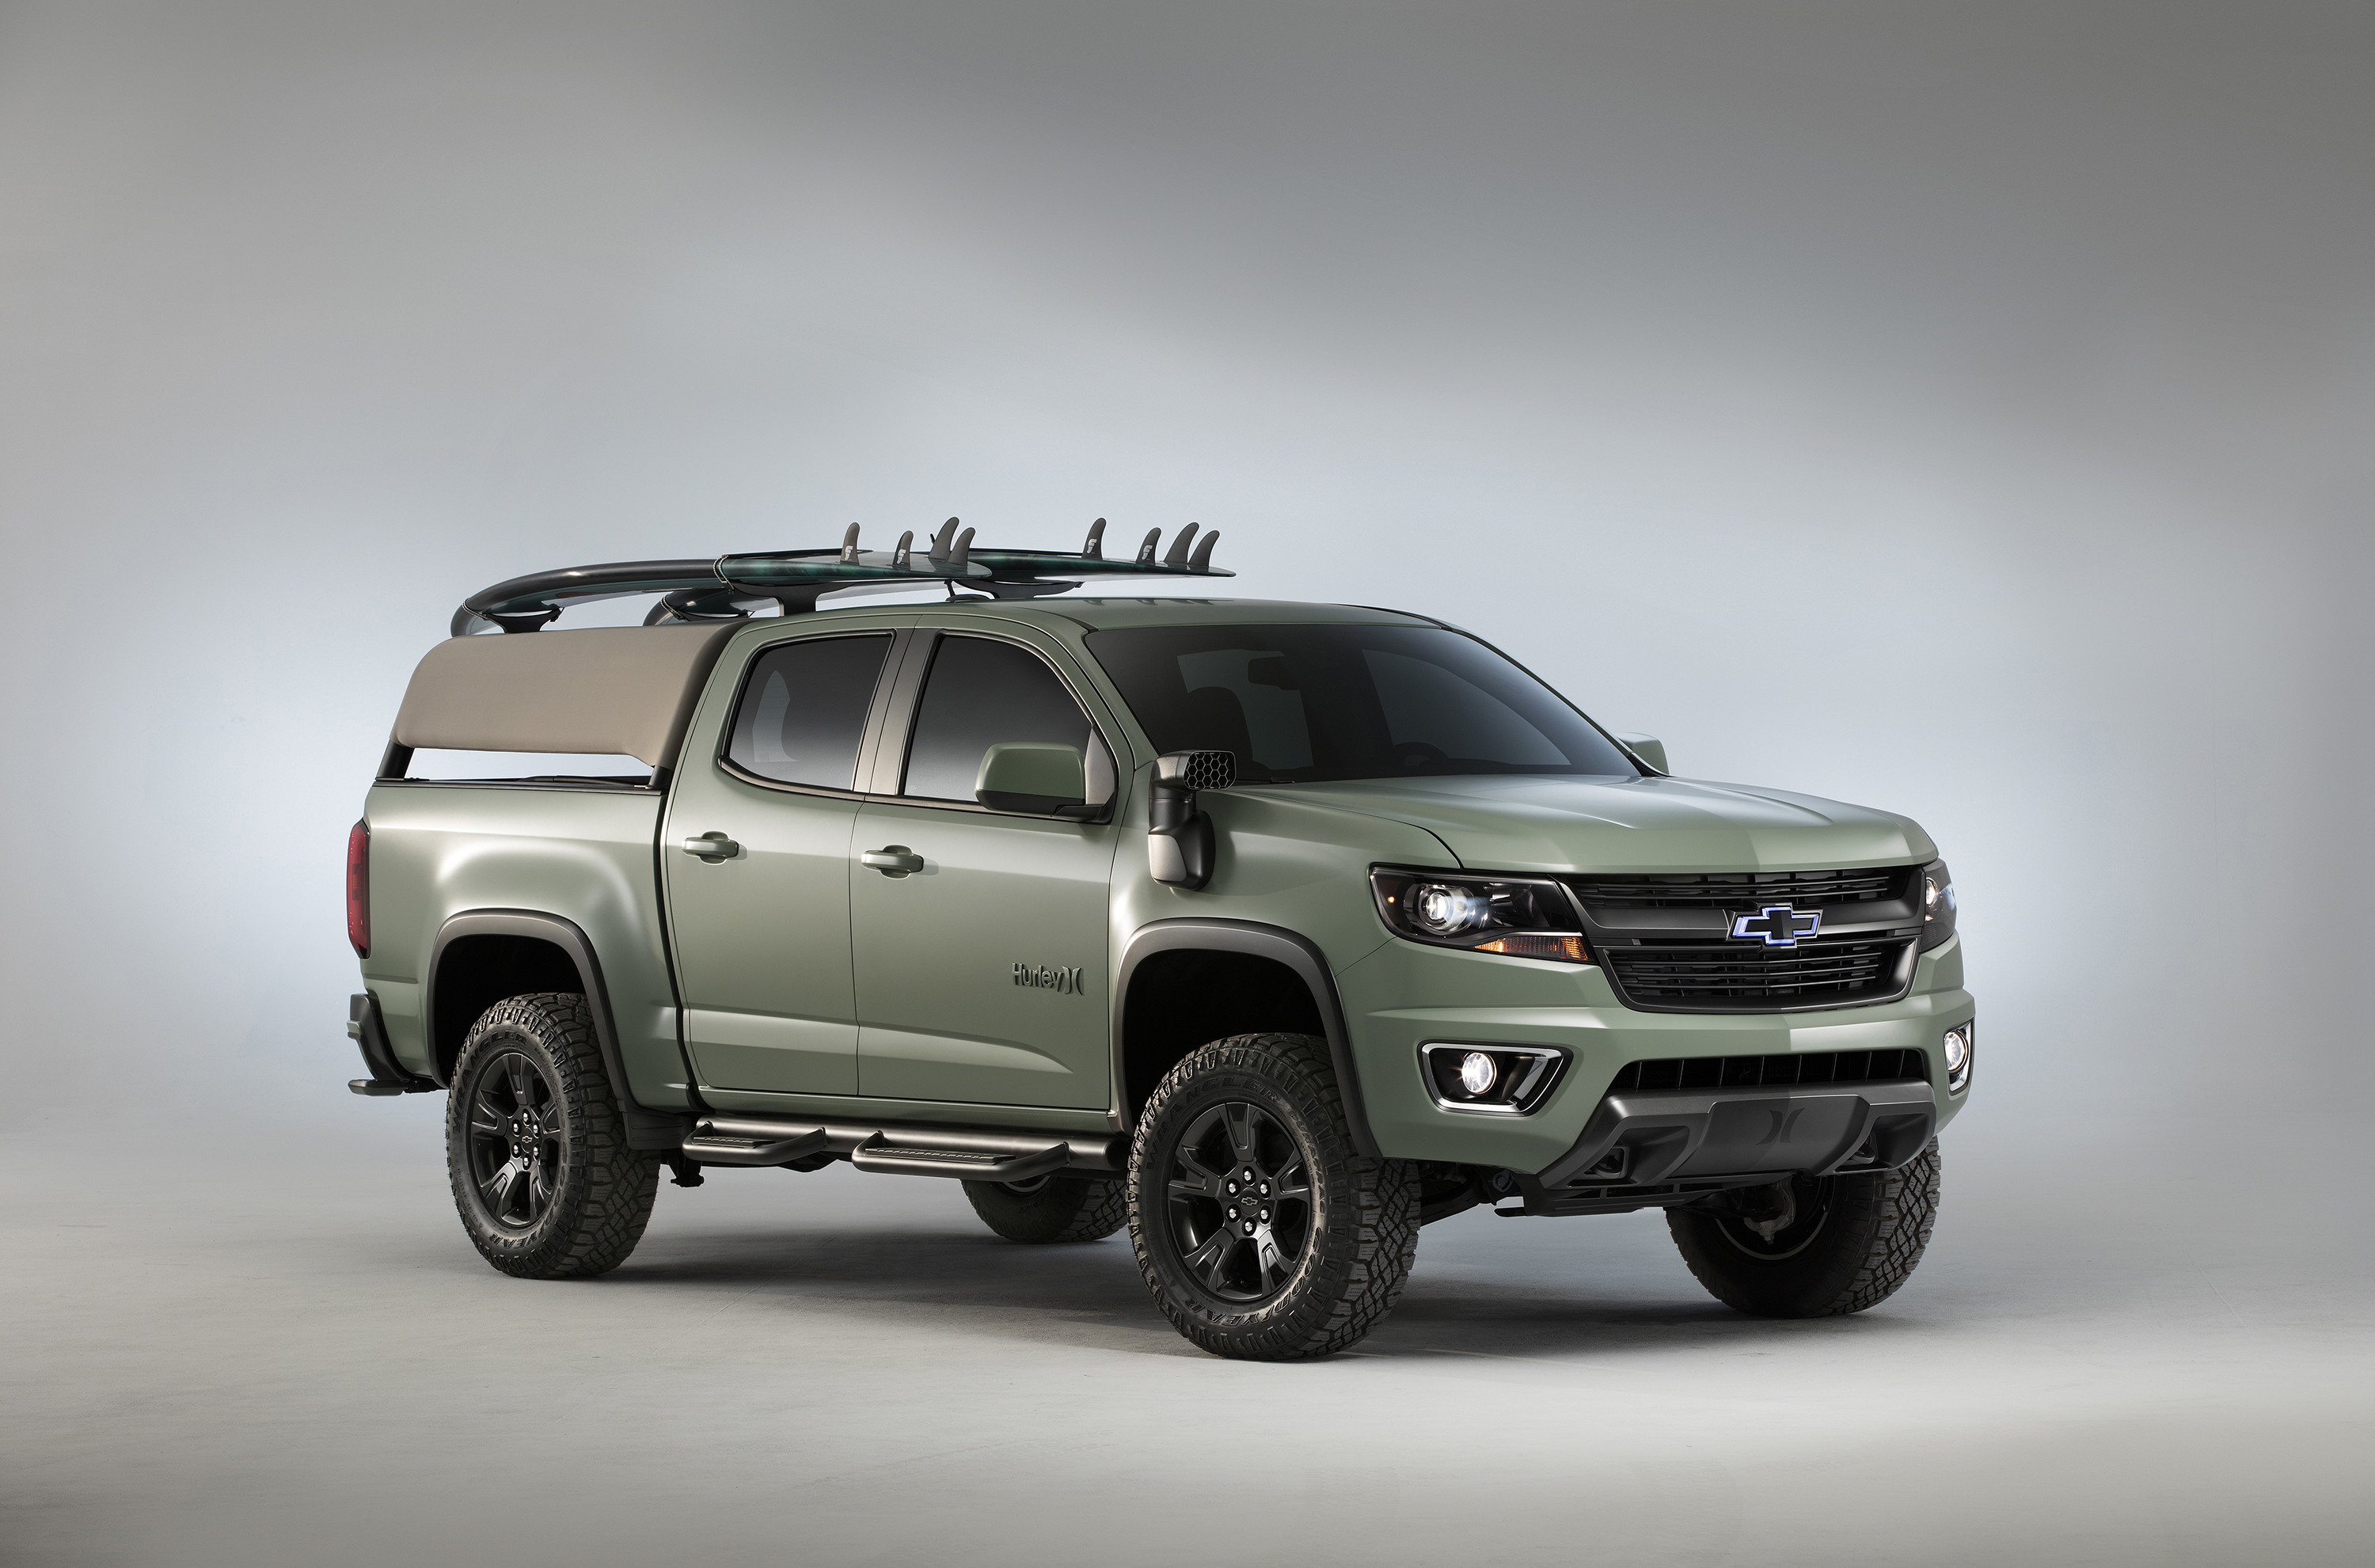 Chevy Colorado Accessories >> Colorado Z71 And Hurley Take Functionality To The Beach